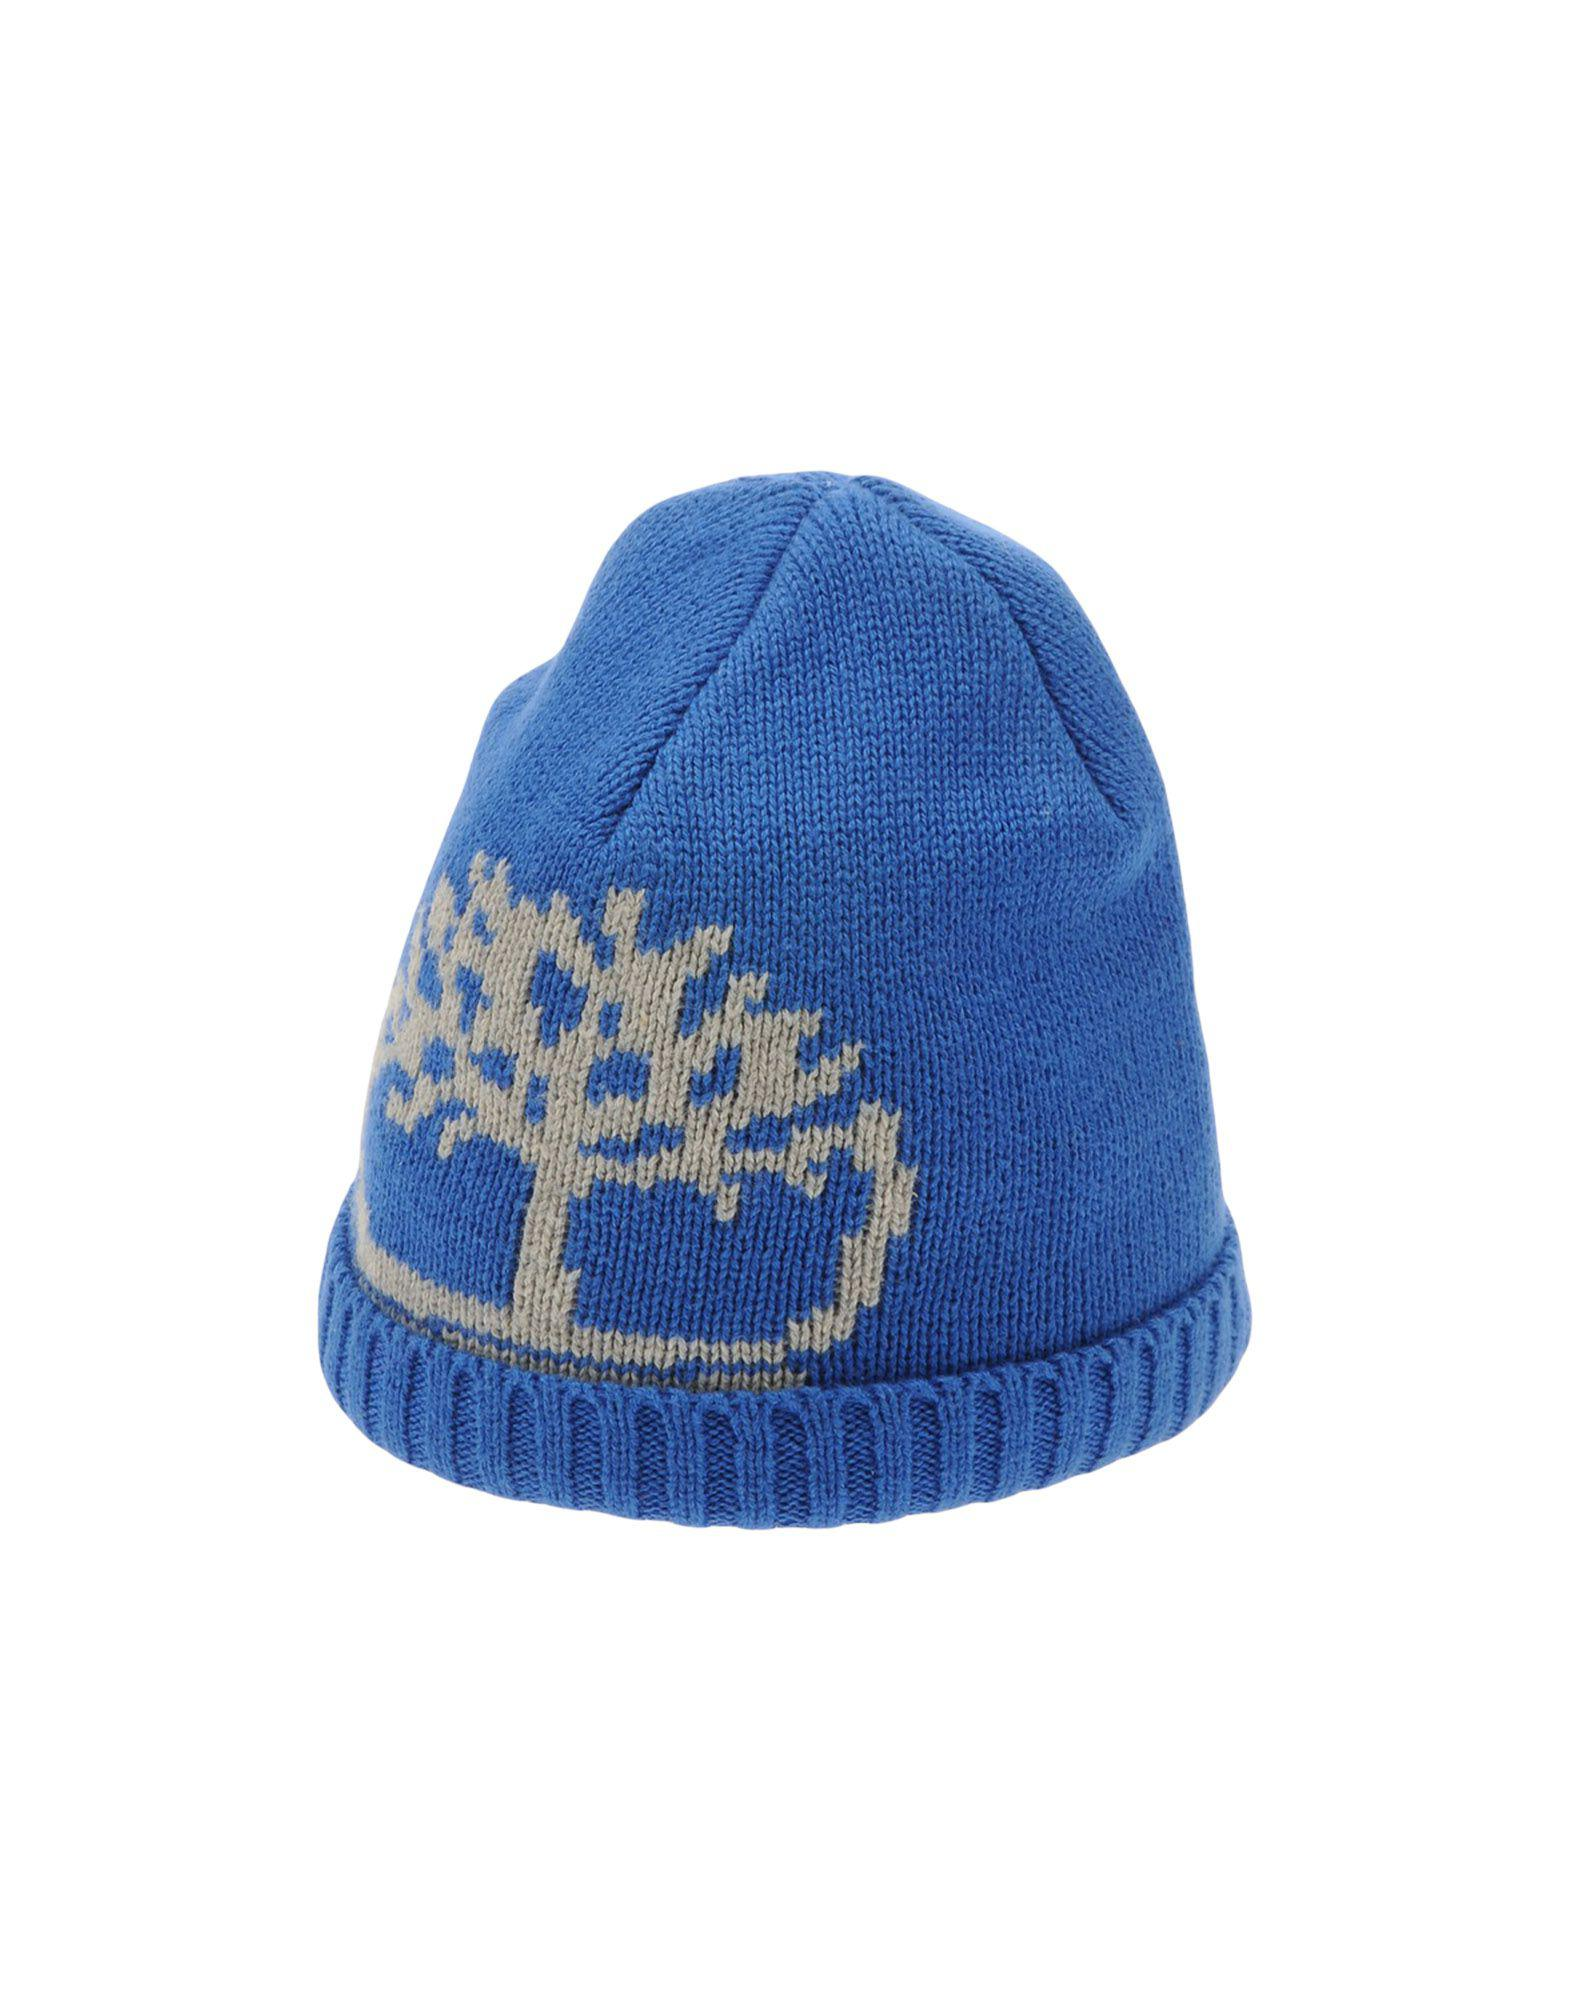 40596462eed4b9 Timberland Hat Wool Visor Beanie - Parchment'N'Lead